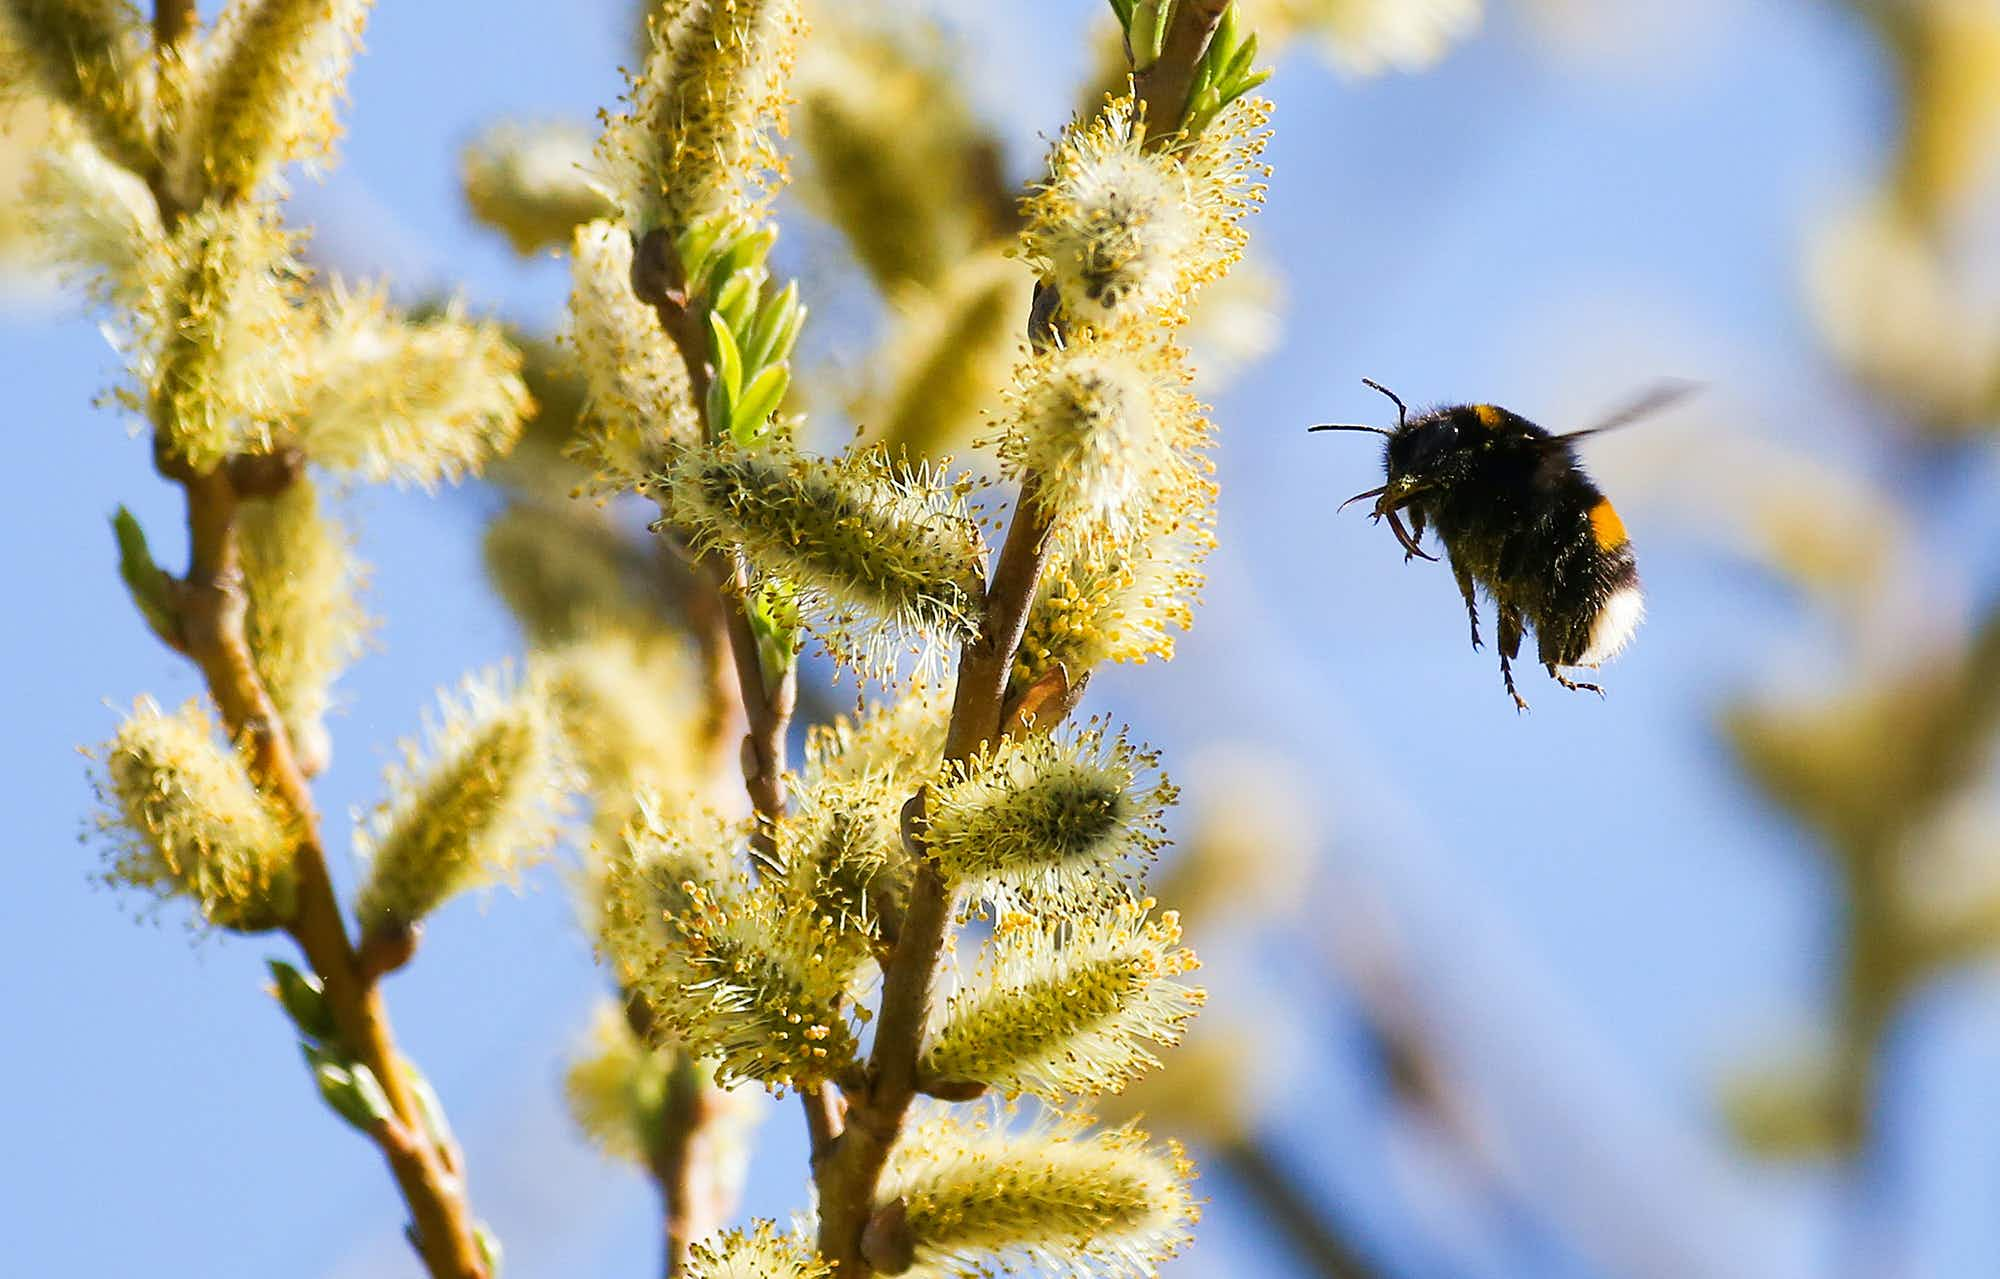 Scientists are using the flight of the bumblebee to cut plane flying times